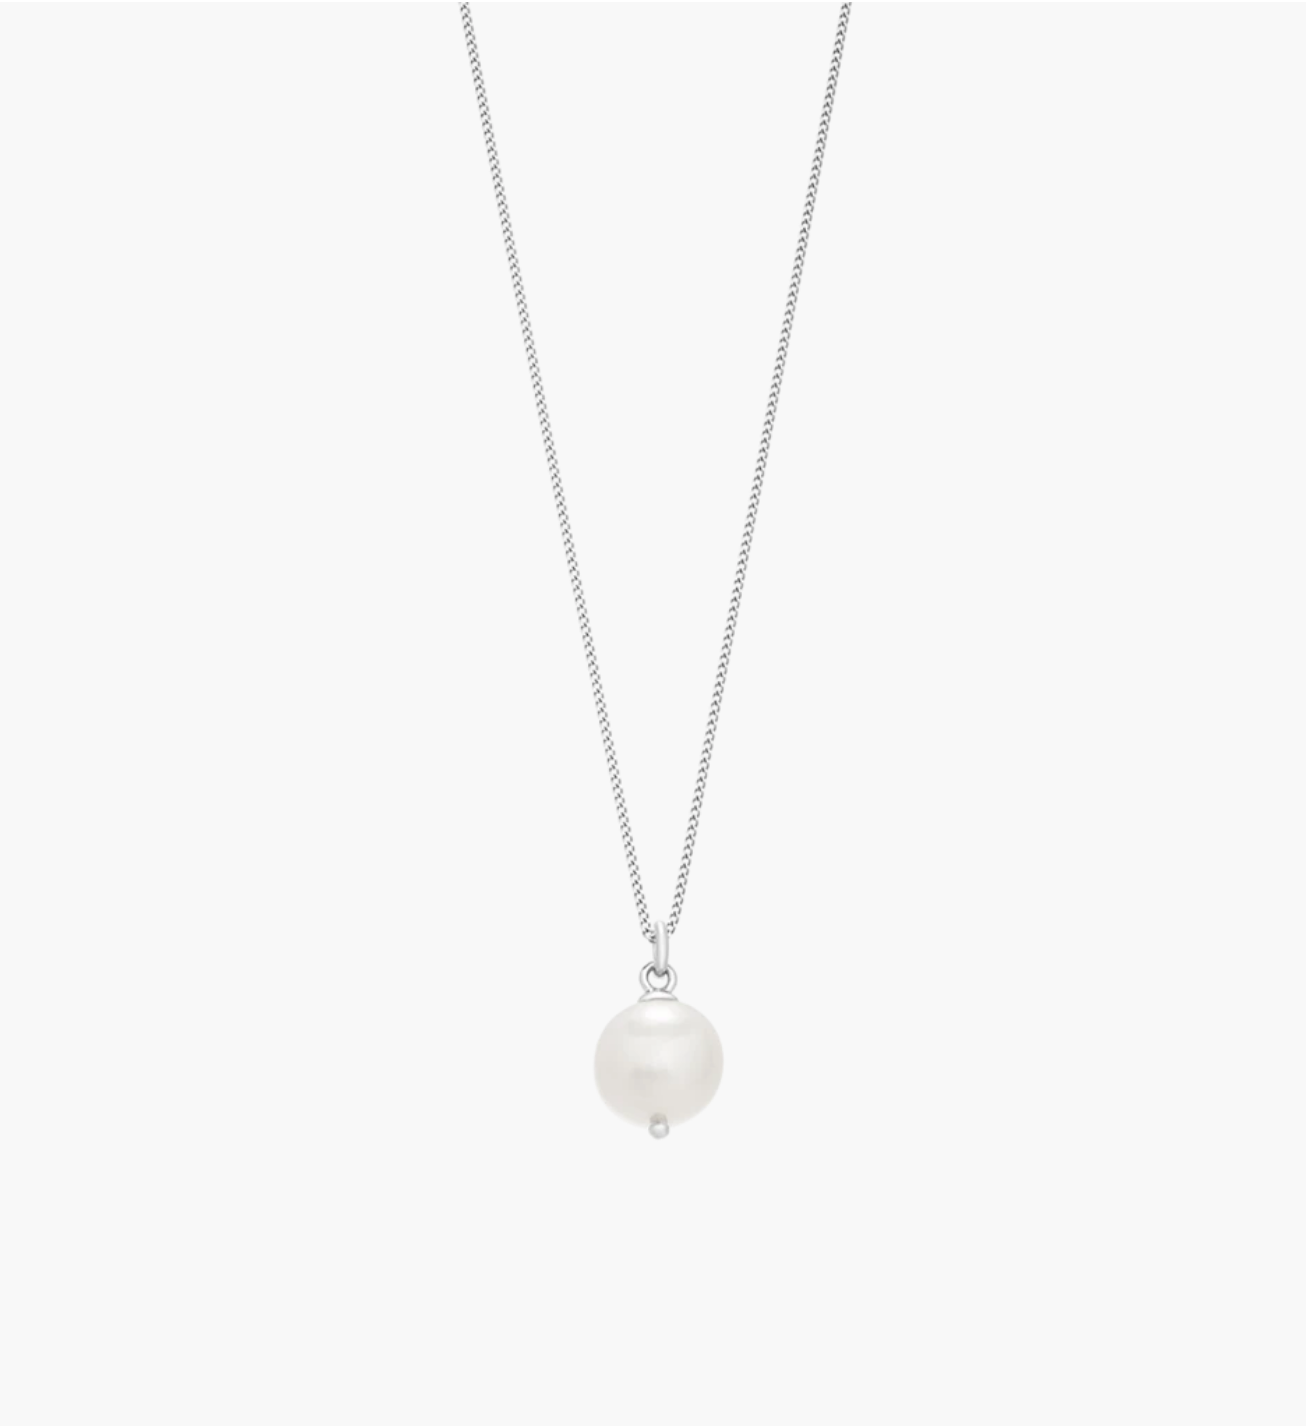 Kirstin Ash Large Freshwater Pearl Necklace - Sterling Silver